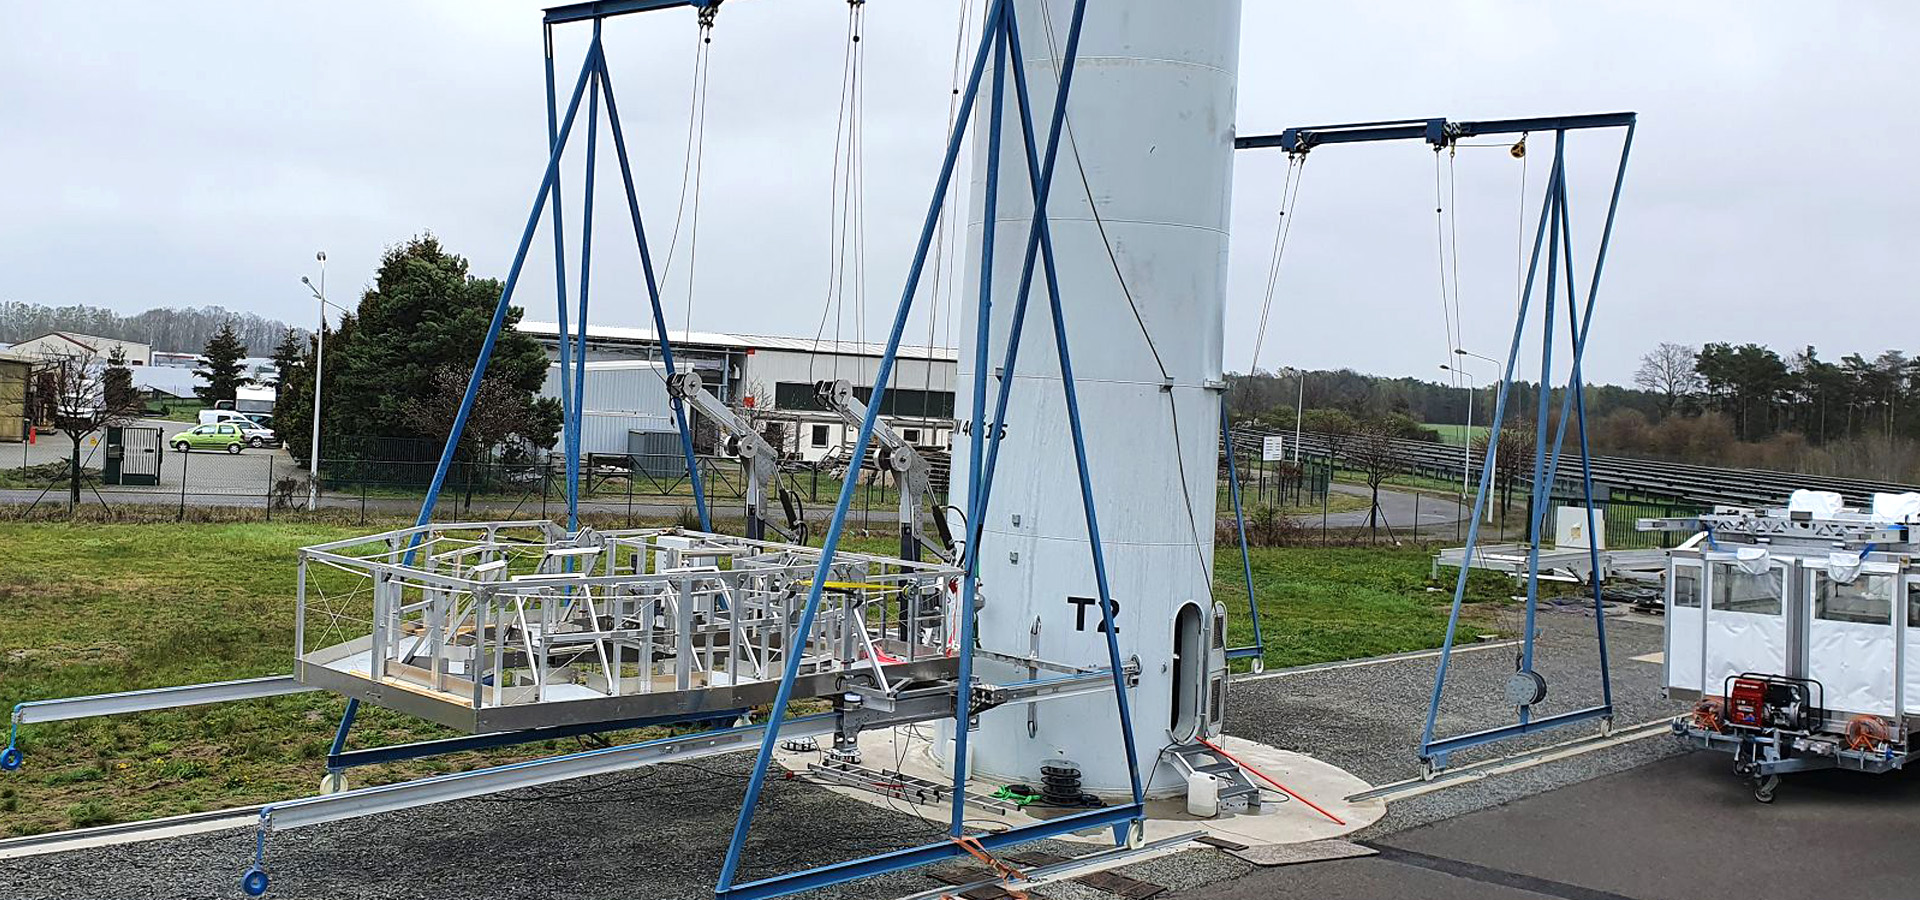 The System terra basic hangs at the test centre in Ruhland.